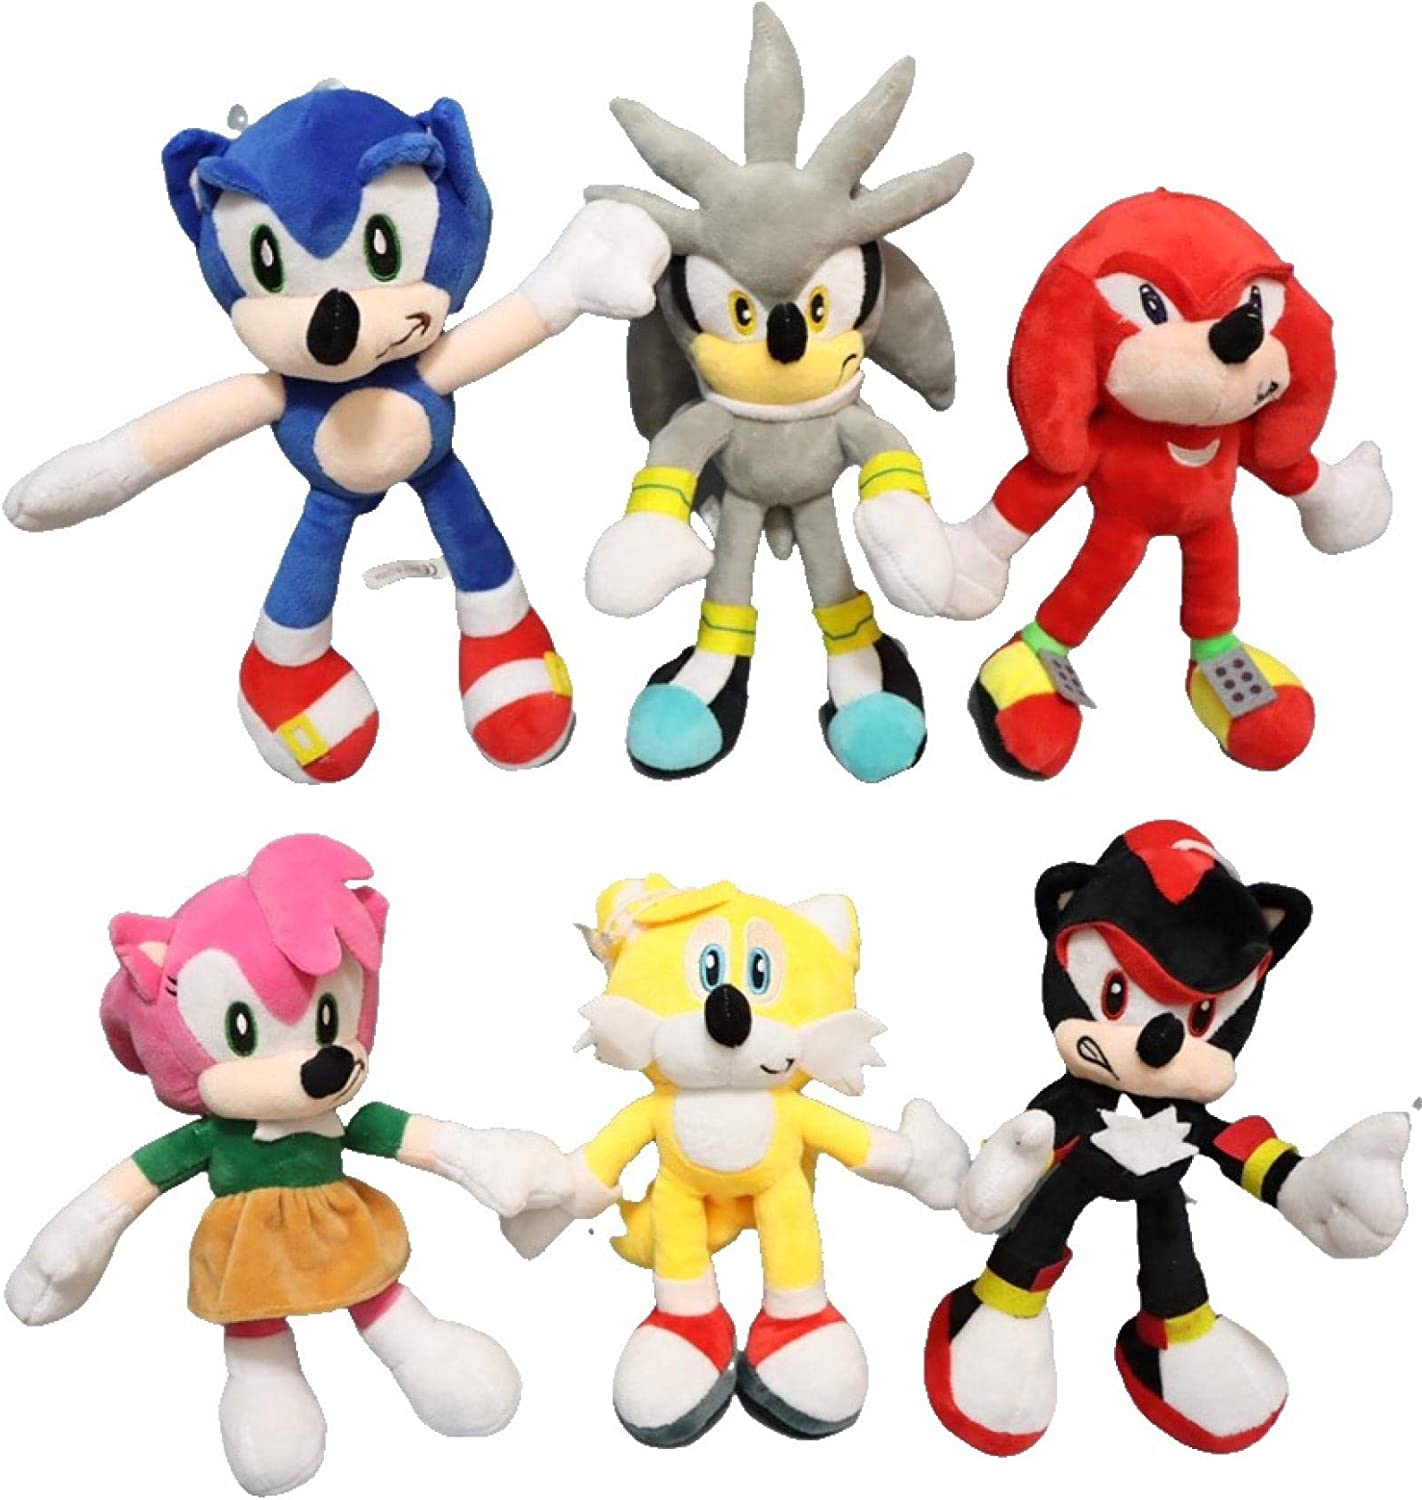 Sonic anime doll 6pcs lot Plush Soni Blue Shadow Sale Special Price Doll Toys Max 88% OFF